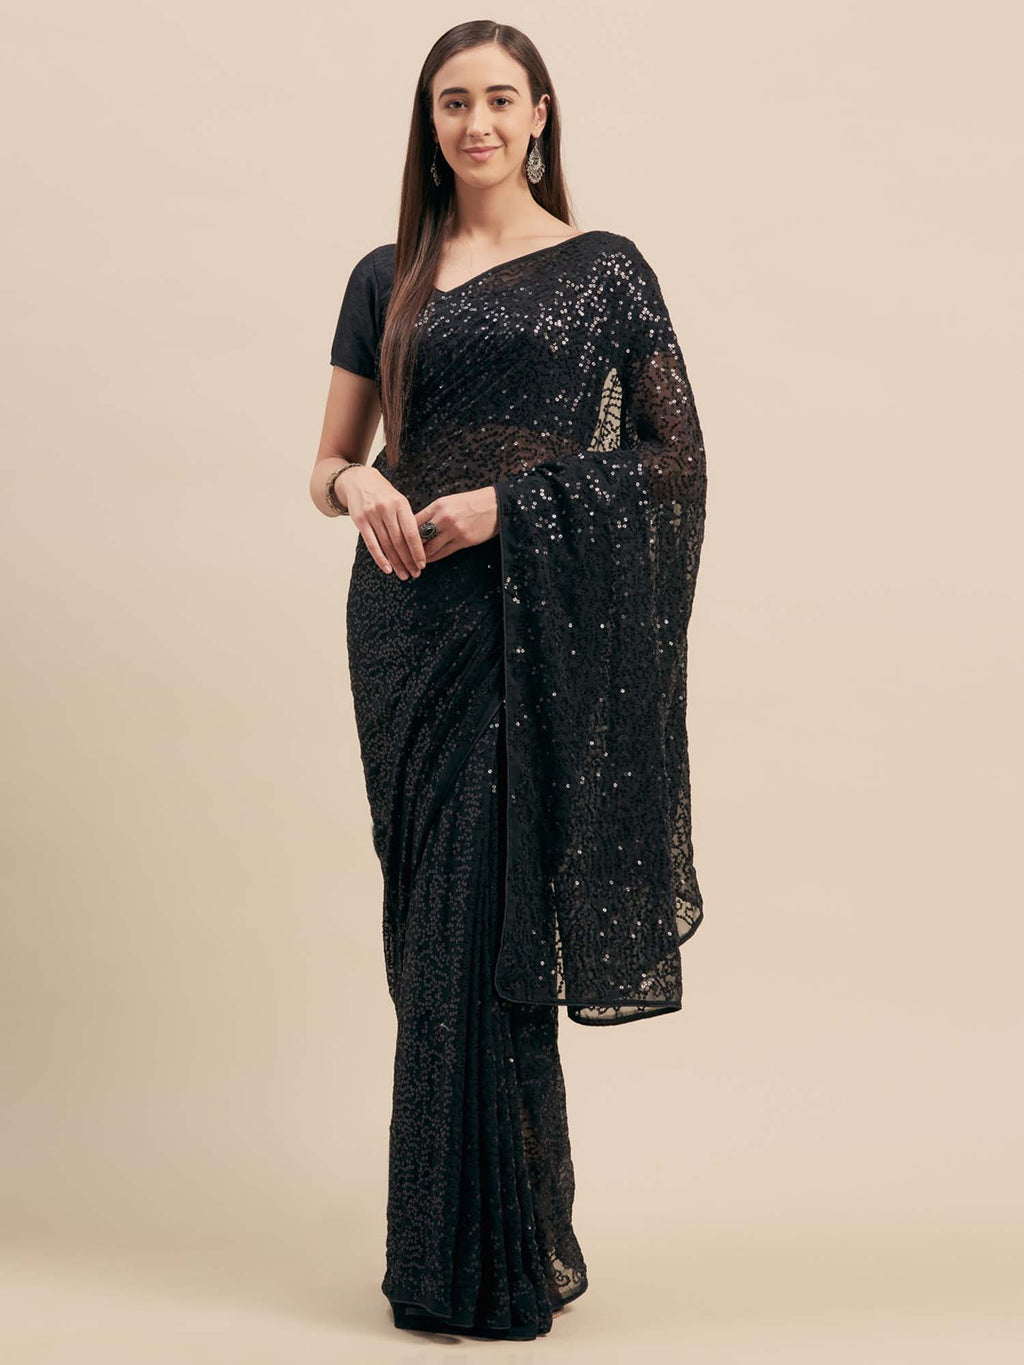 Black Poly Georgette Sequinns Embroidered Saree - Riviera Closet